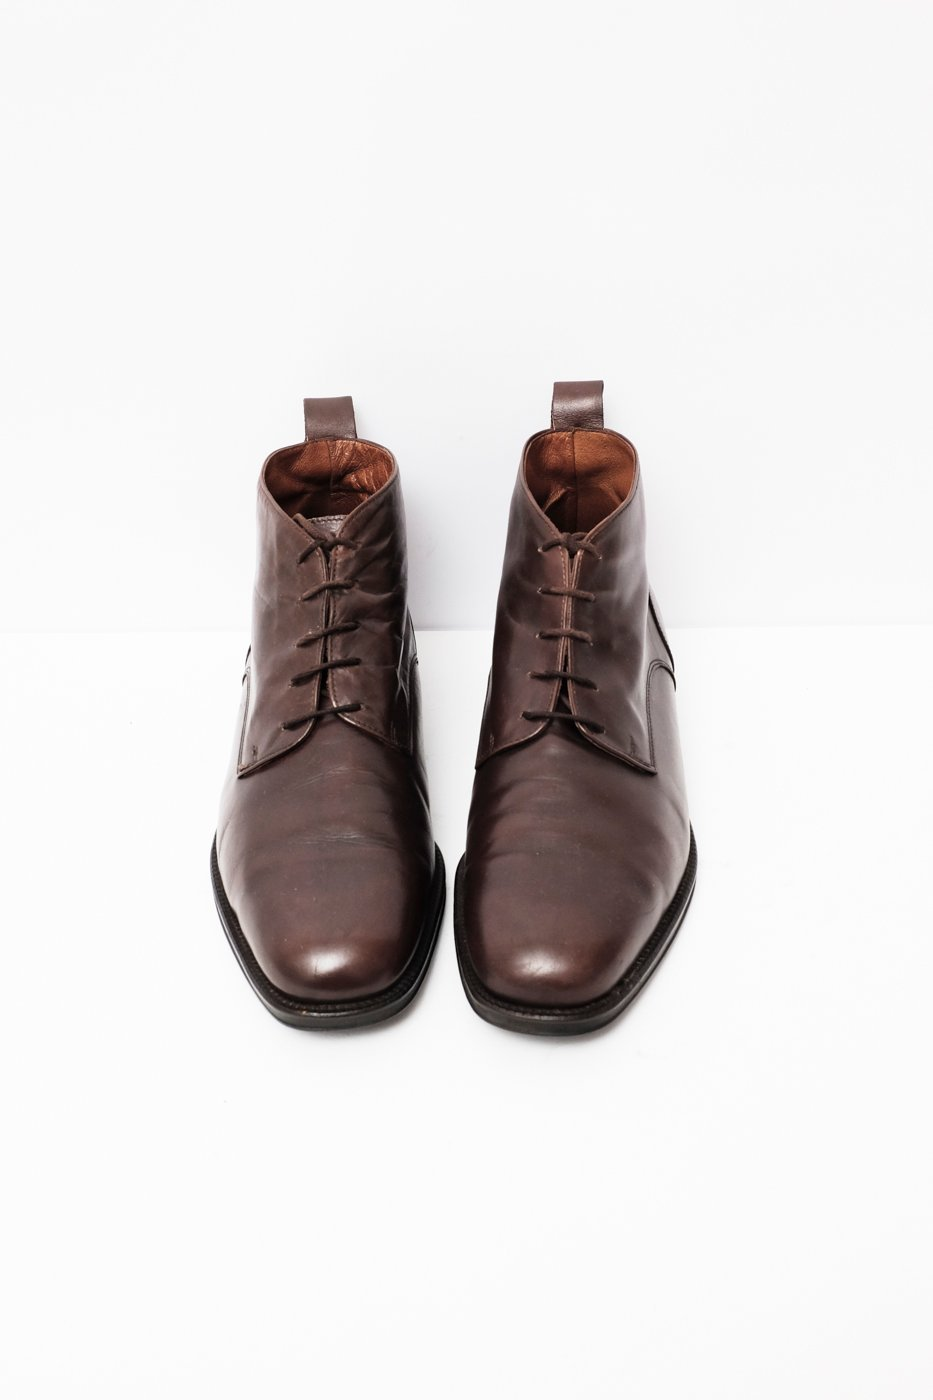 0263_DANDY 40 41 LEATHER LACE UP BOOTS